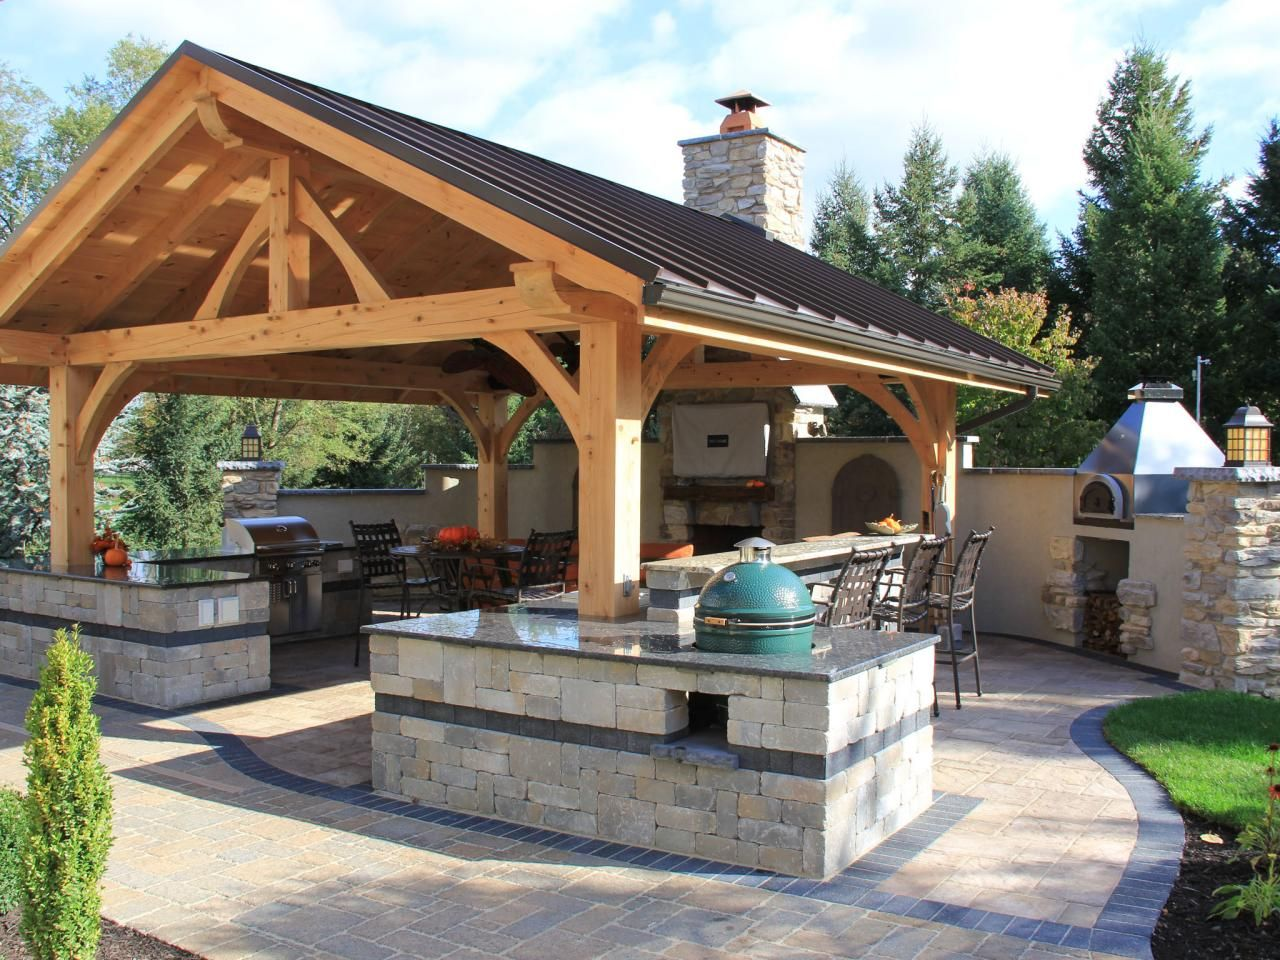 Covered Outdoor Kitchen Rustic Covered Outdoor Kitchen With Bar | Hgtv | Outdoor